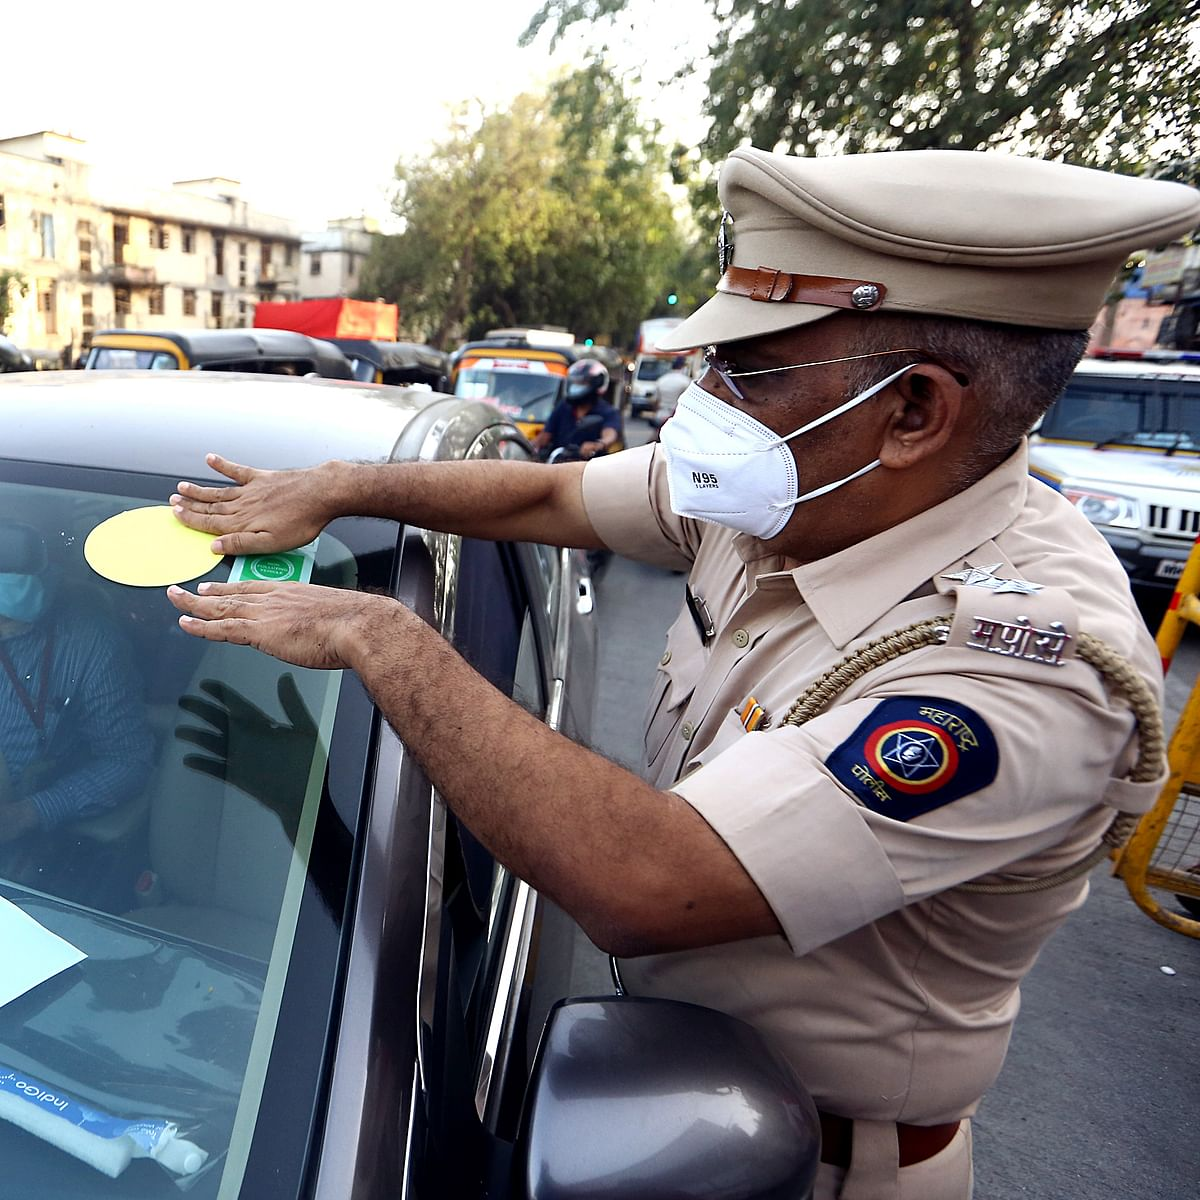 Mumbai: Less traffic congestion at Dahisar, Mulund toll plazas as people follow colour-coded sticker rule